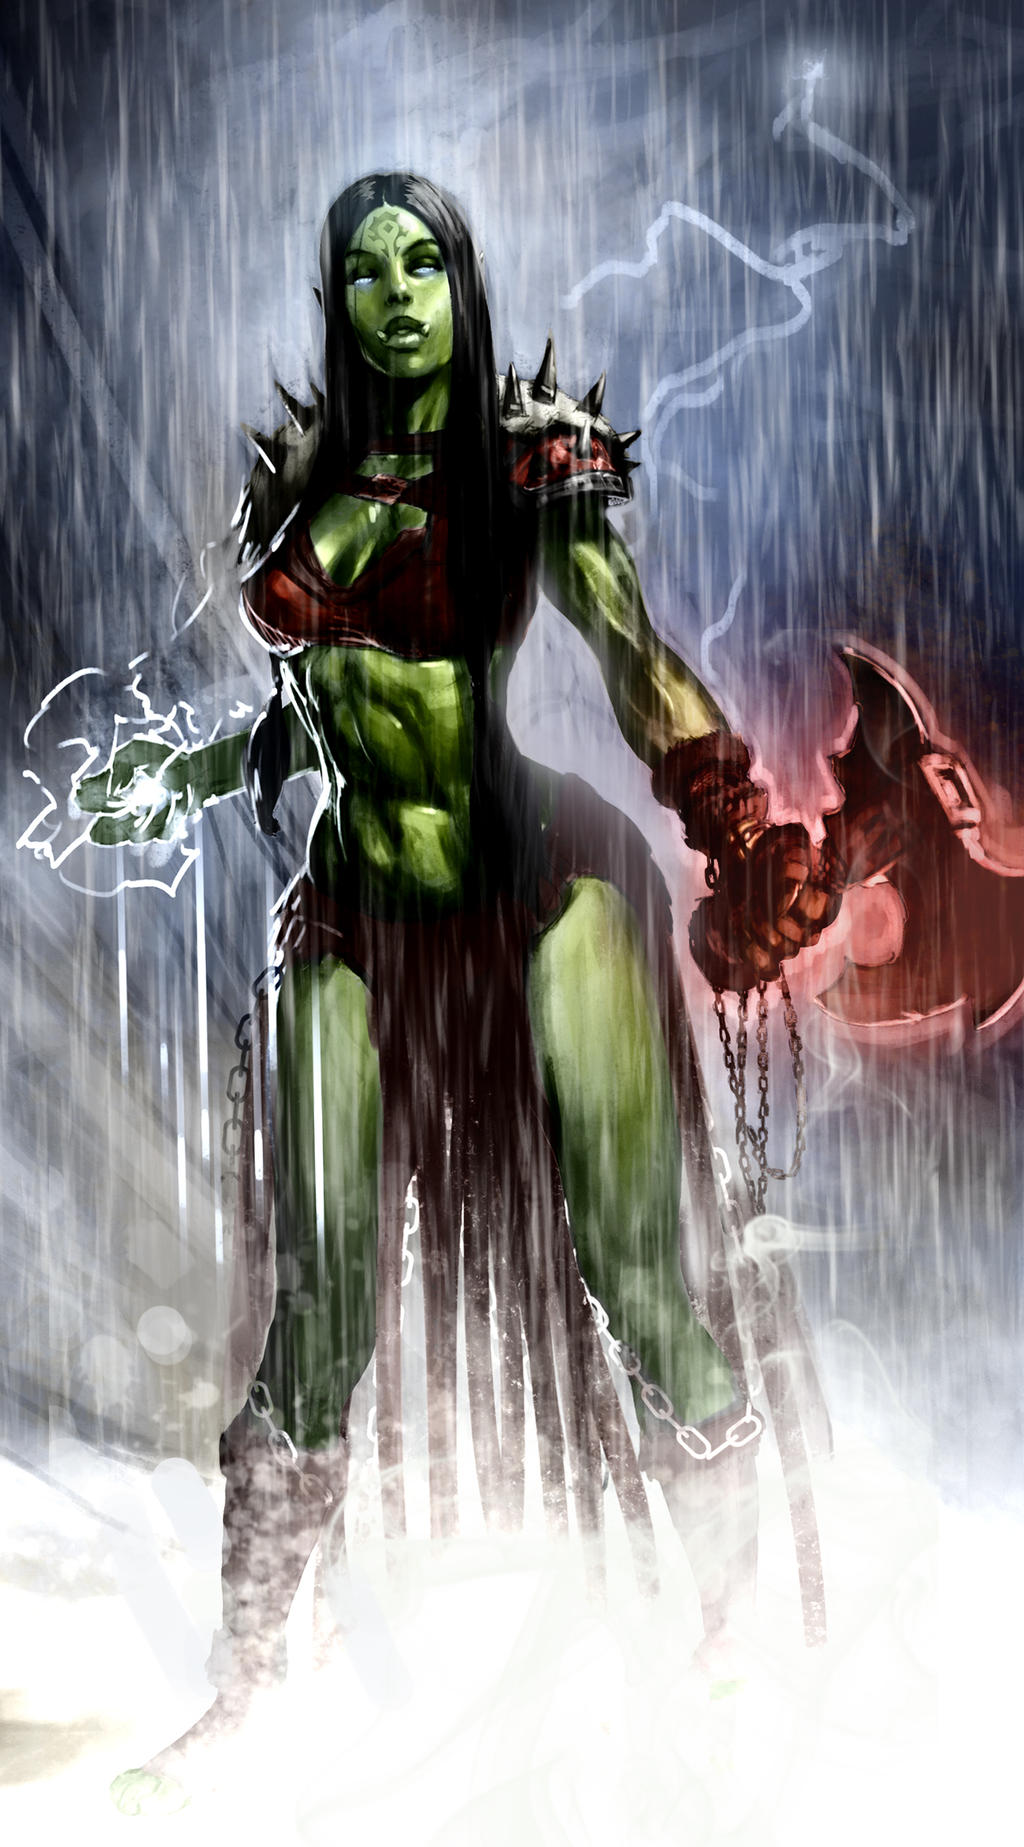 Troll vs orc shaman hentai picture